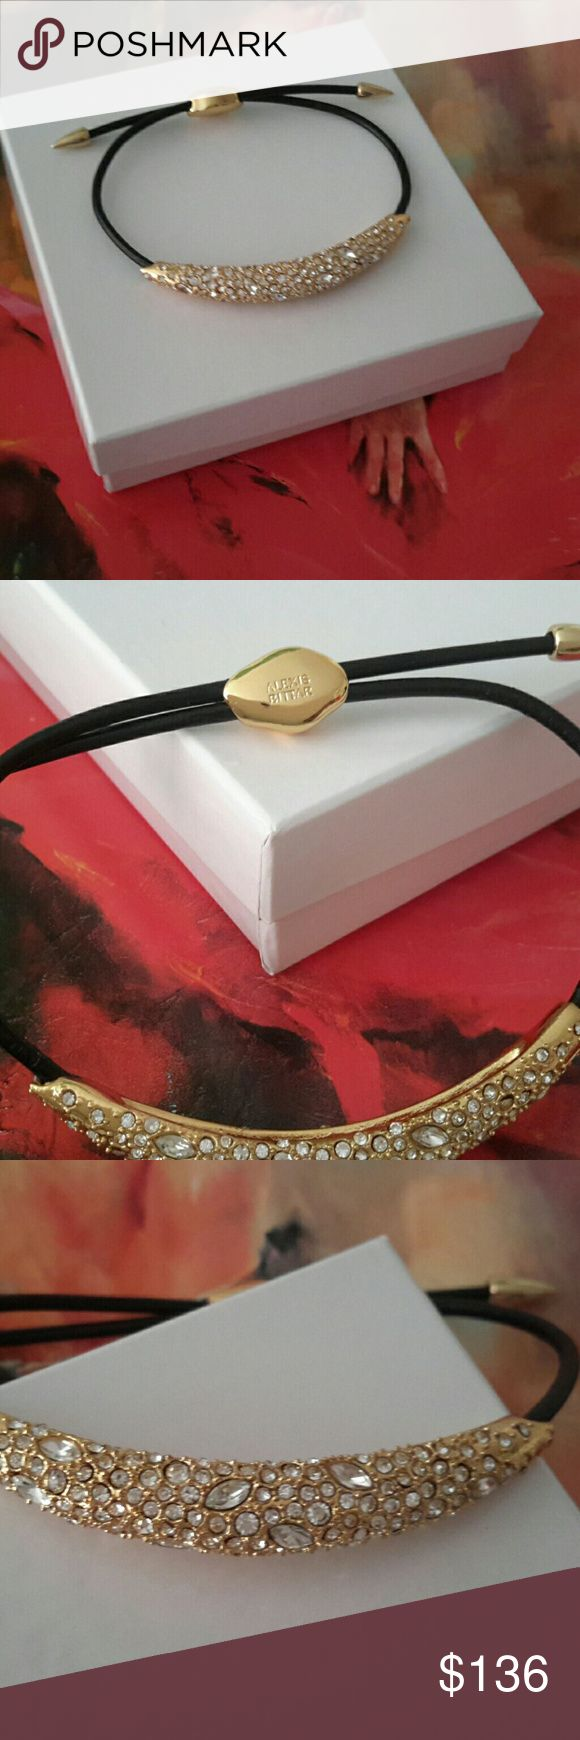 Alexis Bittar Encrusted Bracelet Adjustable black leather band with gold details and beautiful jeweled cap. Awesome! Last and lowest! have the bag! Alexis Bittar Jewelry Bracelets